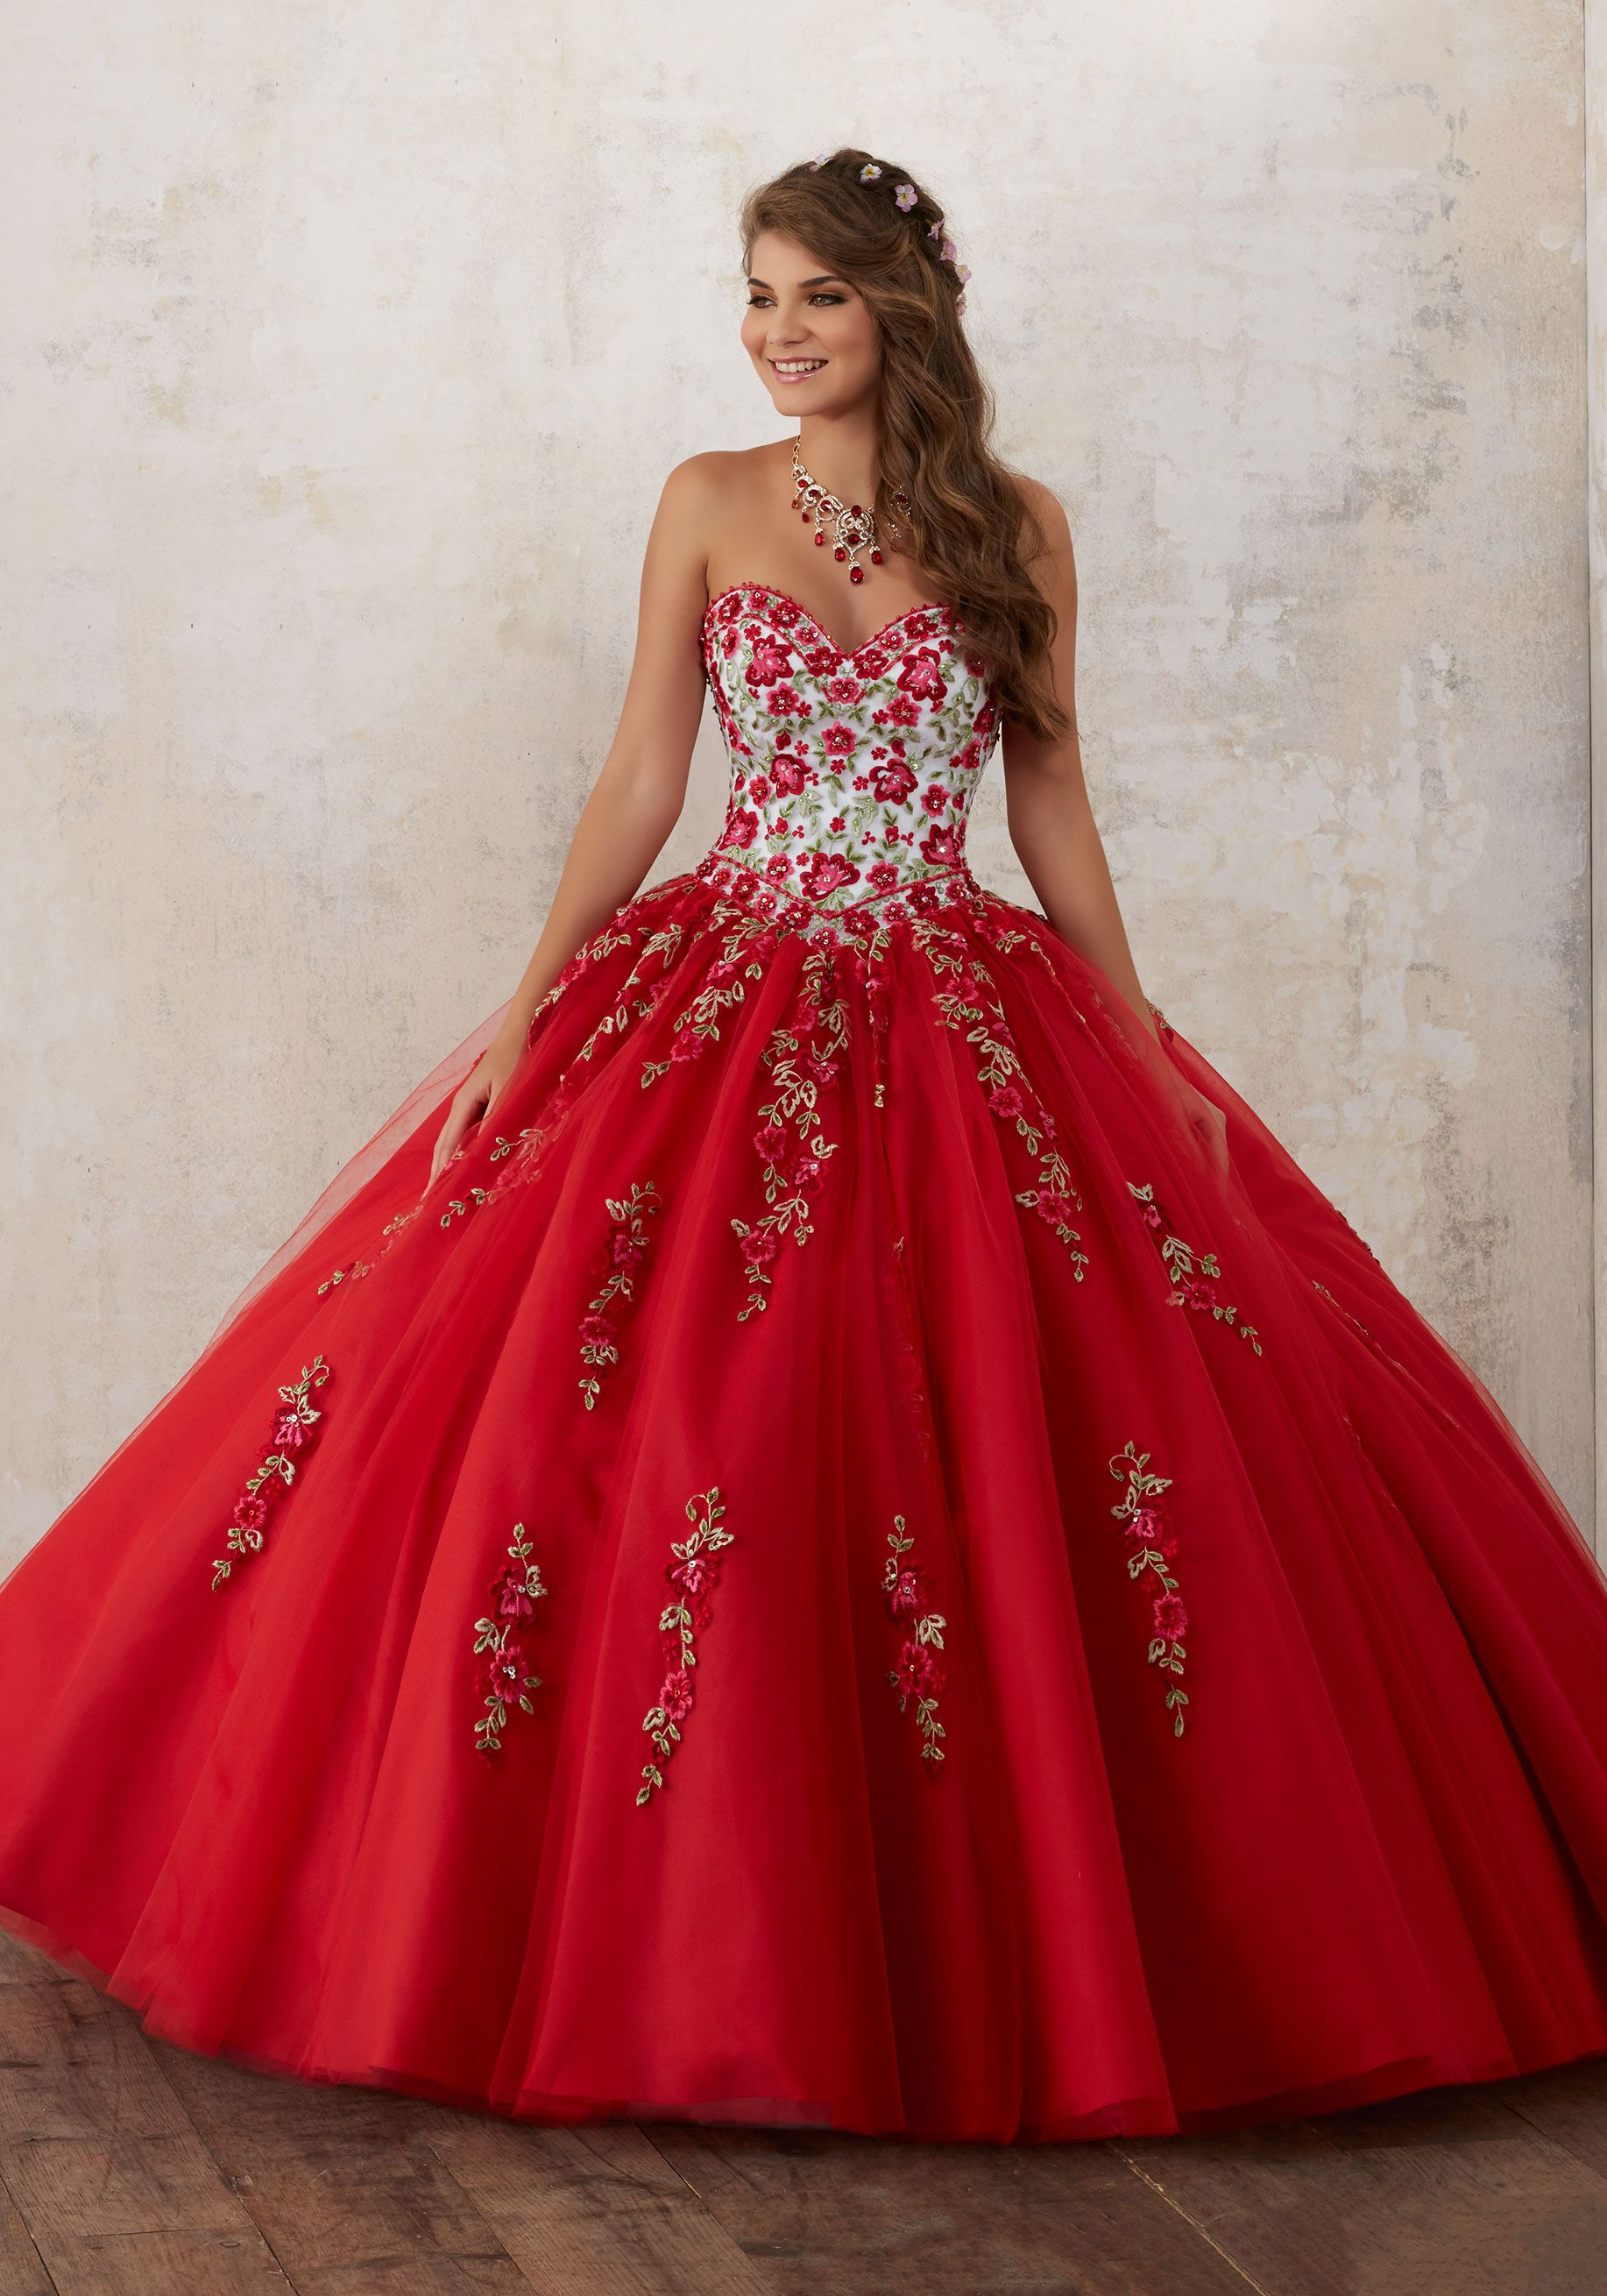 1e1a76243d4 Quinceanera Dresses by Morilee designed by Madeline Gardner. Gorgeous  Floral Embroidey Takes Center Stage on This Tulle Quinceañera Dress with  Corset Back.